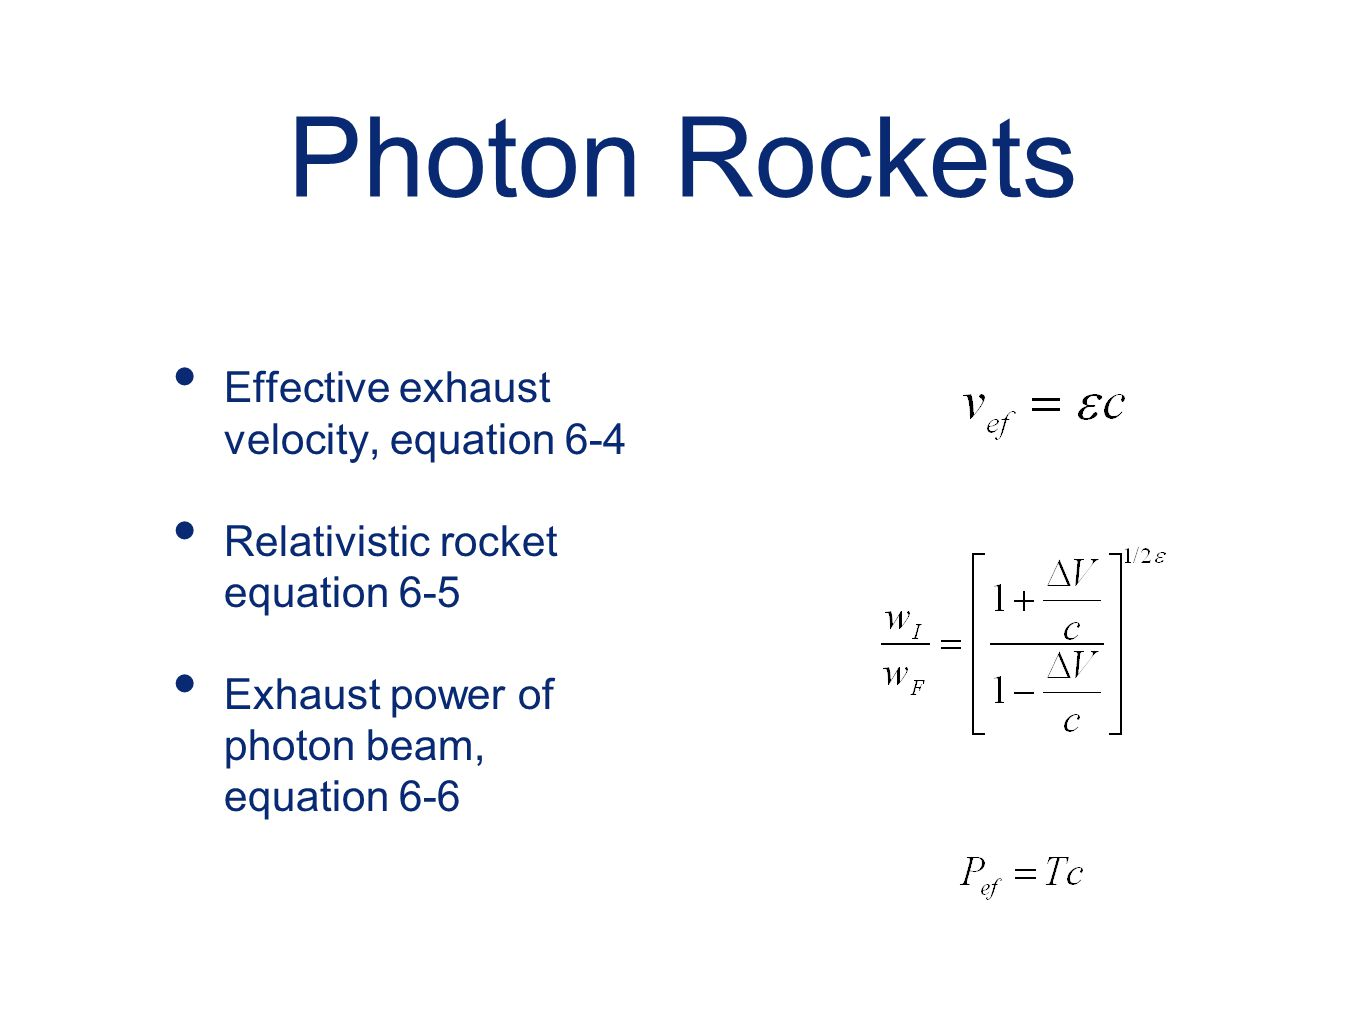 Photon Rockets Effective exhaust velocity, equation 6-4 Relativistic rocket equation 6-5 Exhaust power of photon beam, equation 6-6